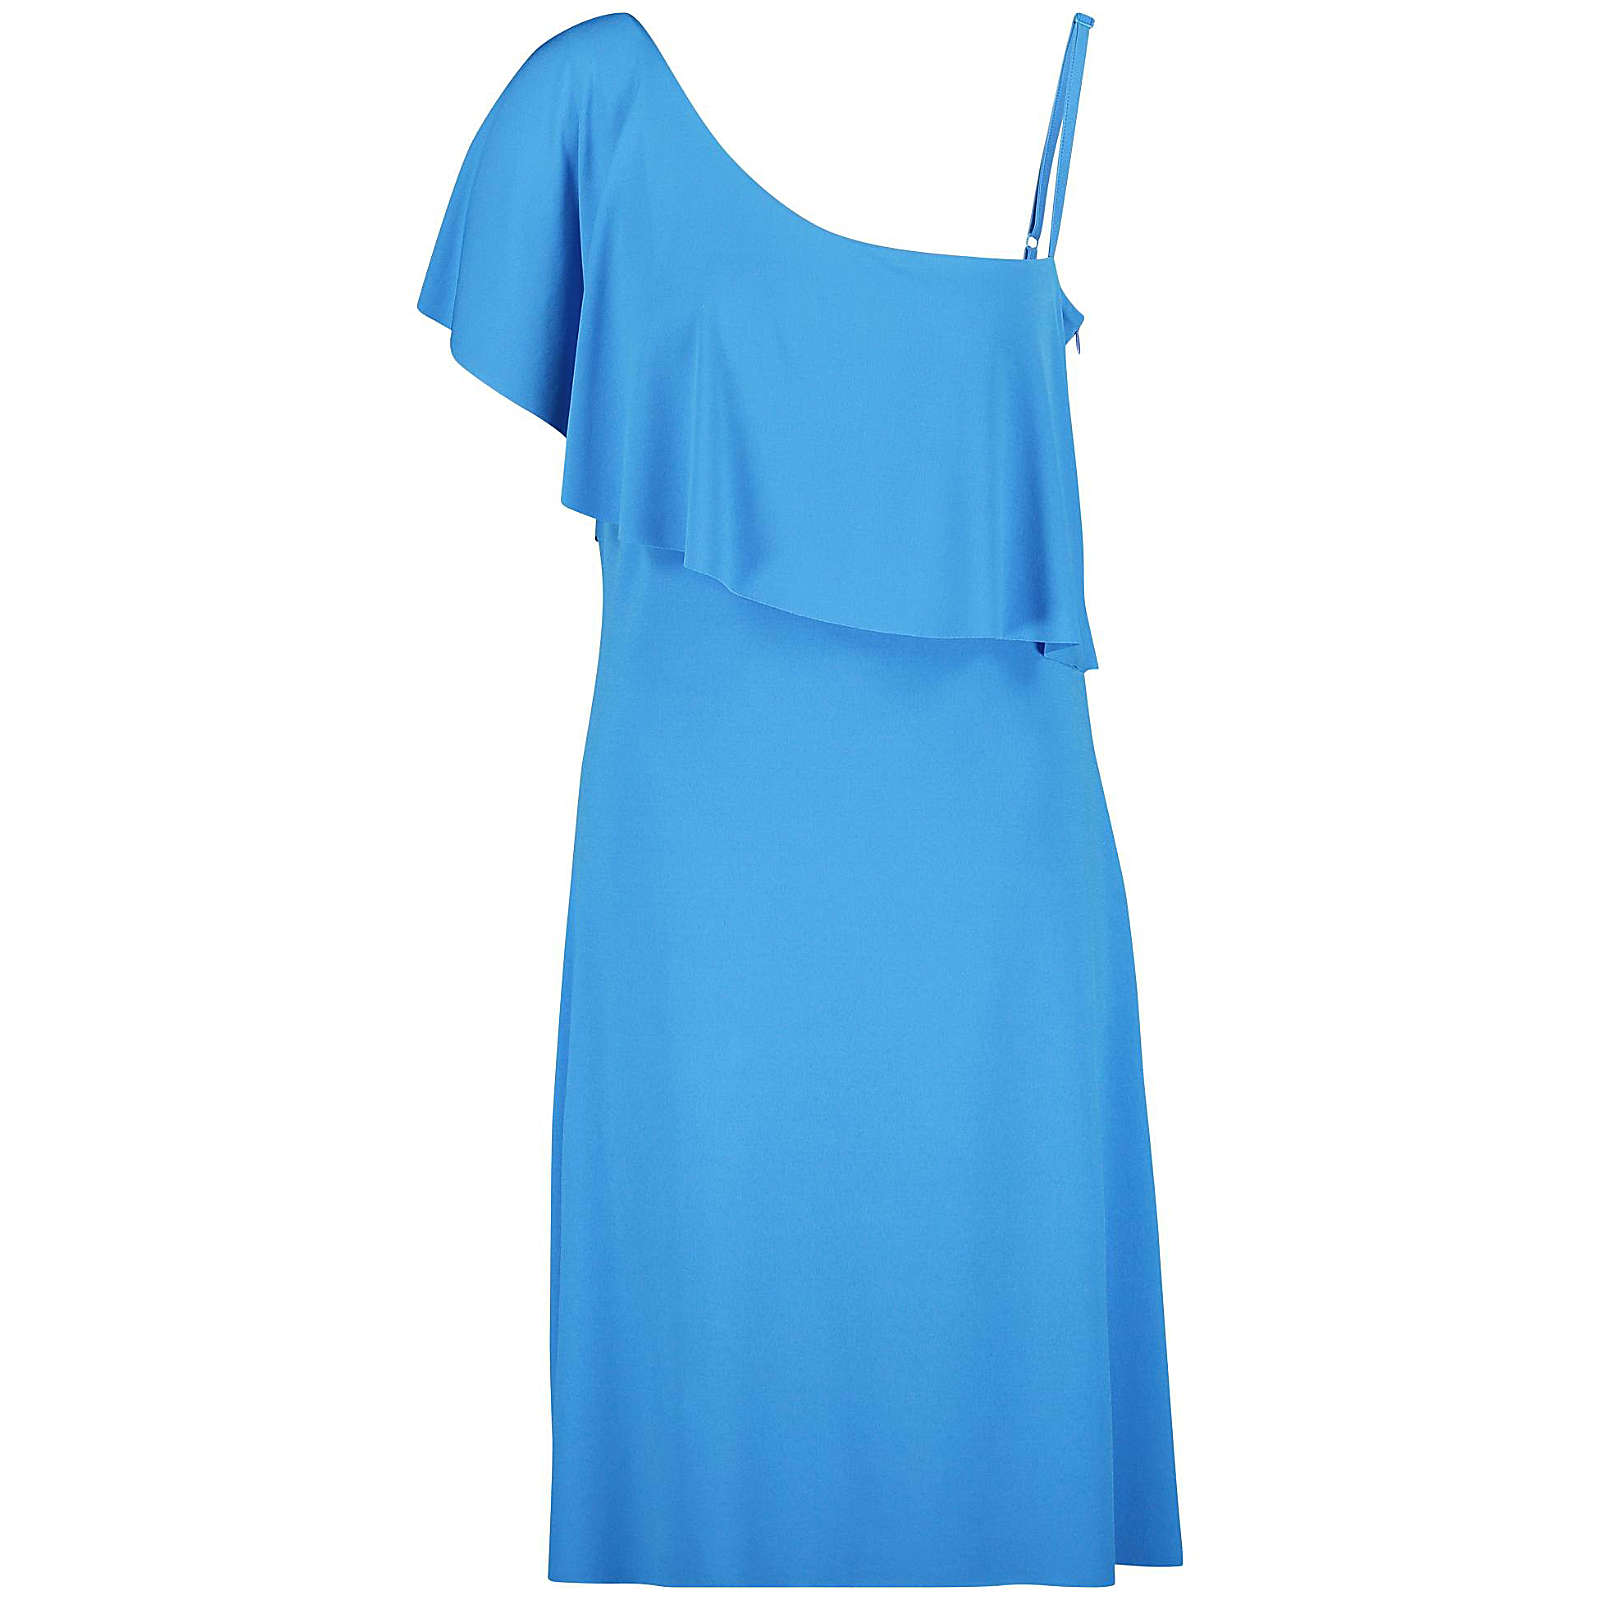 Taifun Kleid Gewirke One-Shoulder-Kleid blau Damen Gr. 46